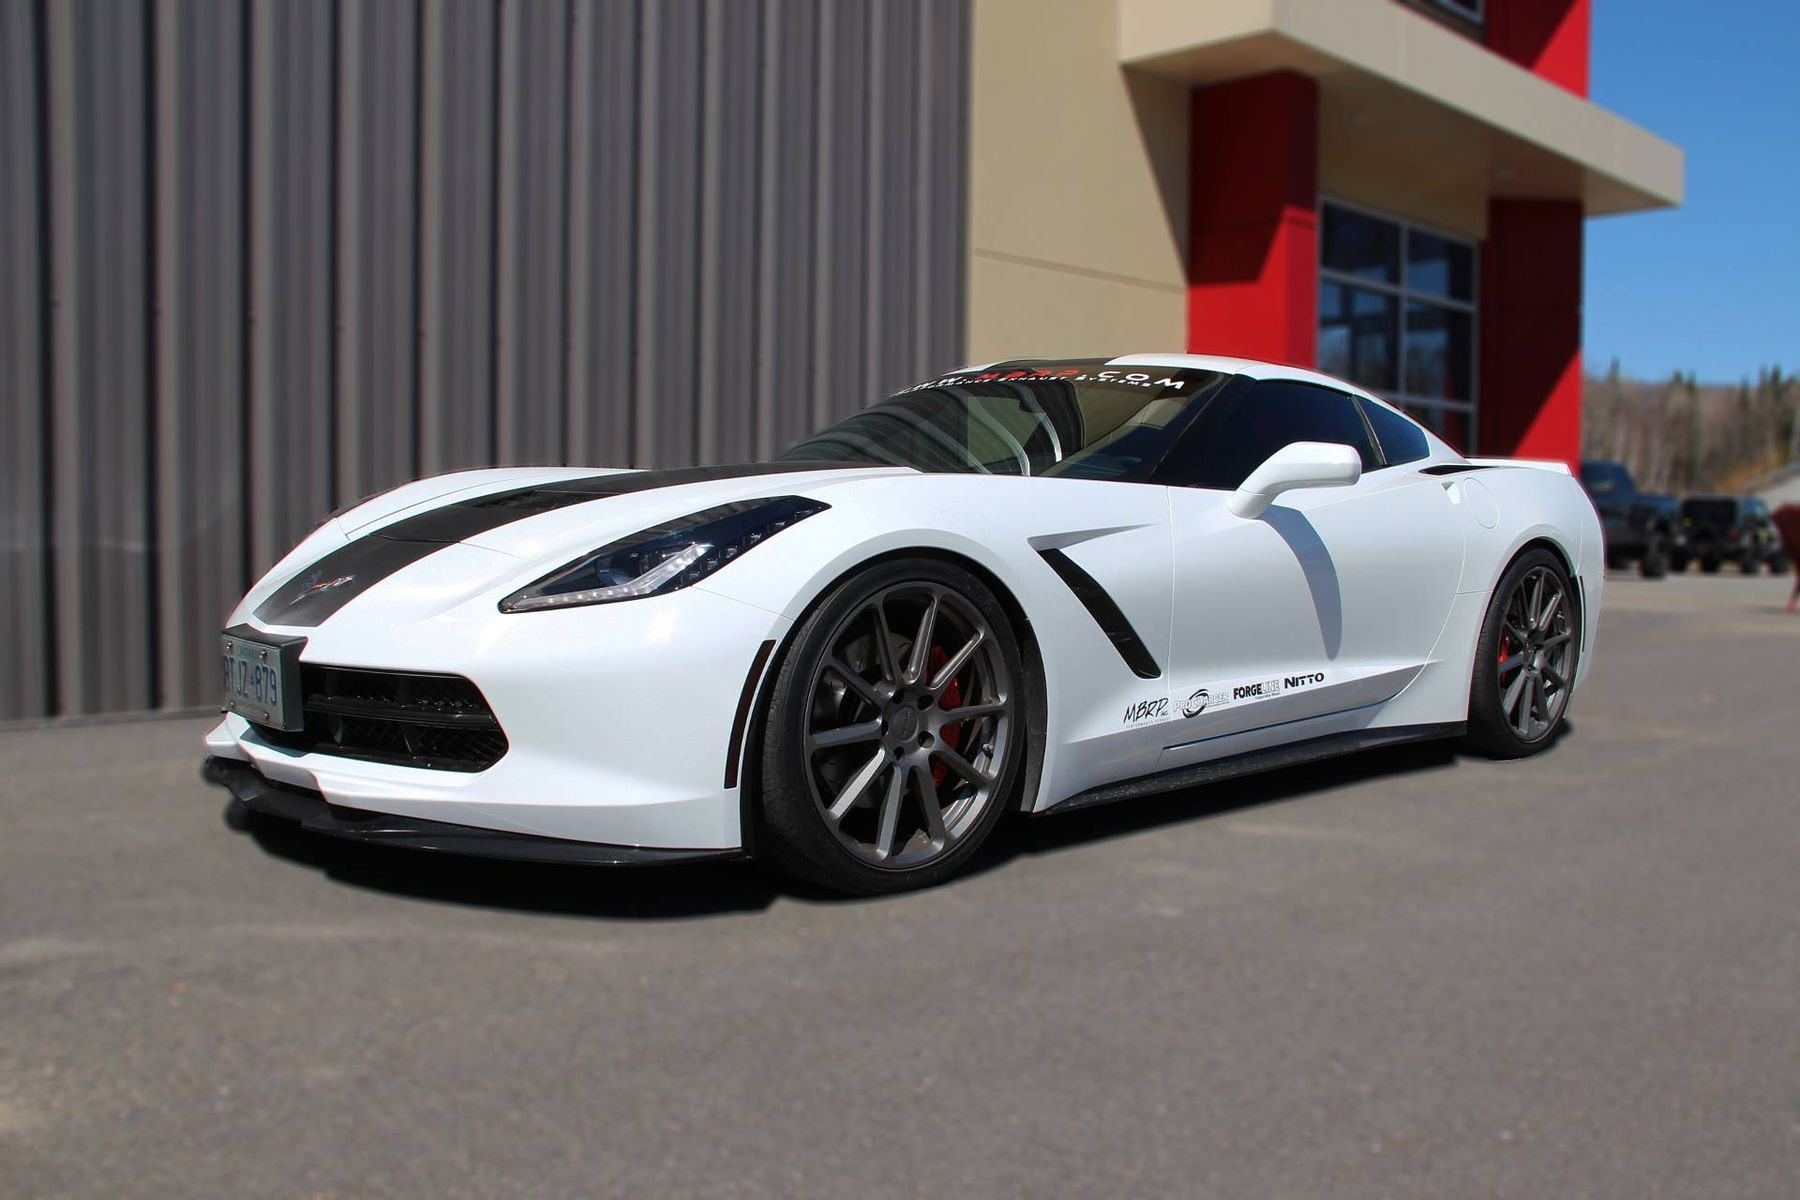 2014 Chevrolet Corvette |  MBRP Performance Exhaust Project C7 Corvette on Forgeline RB1 Wheels